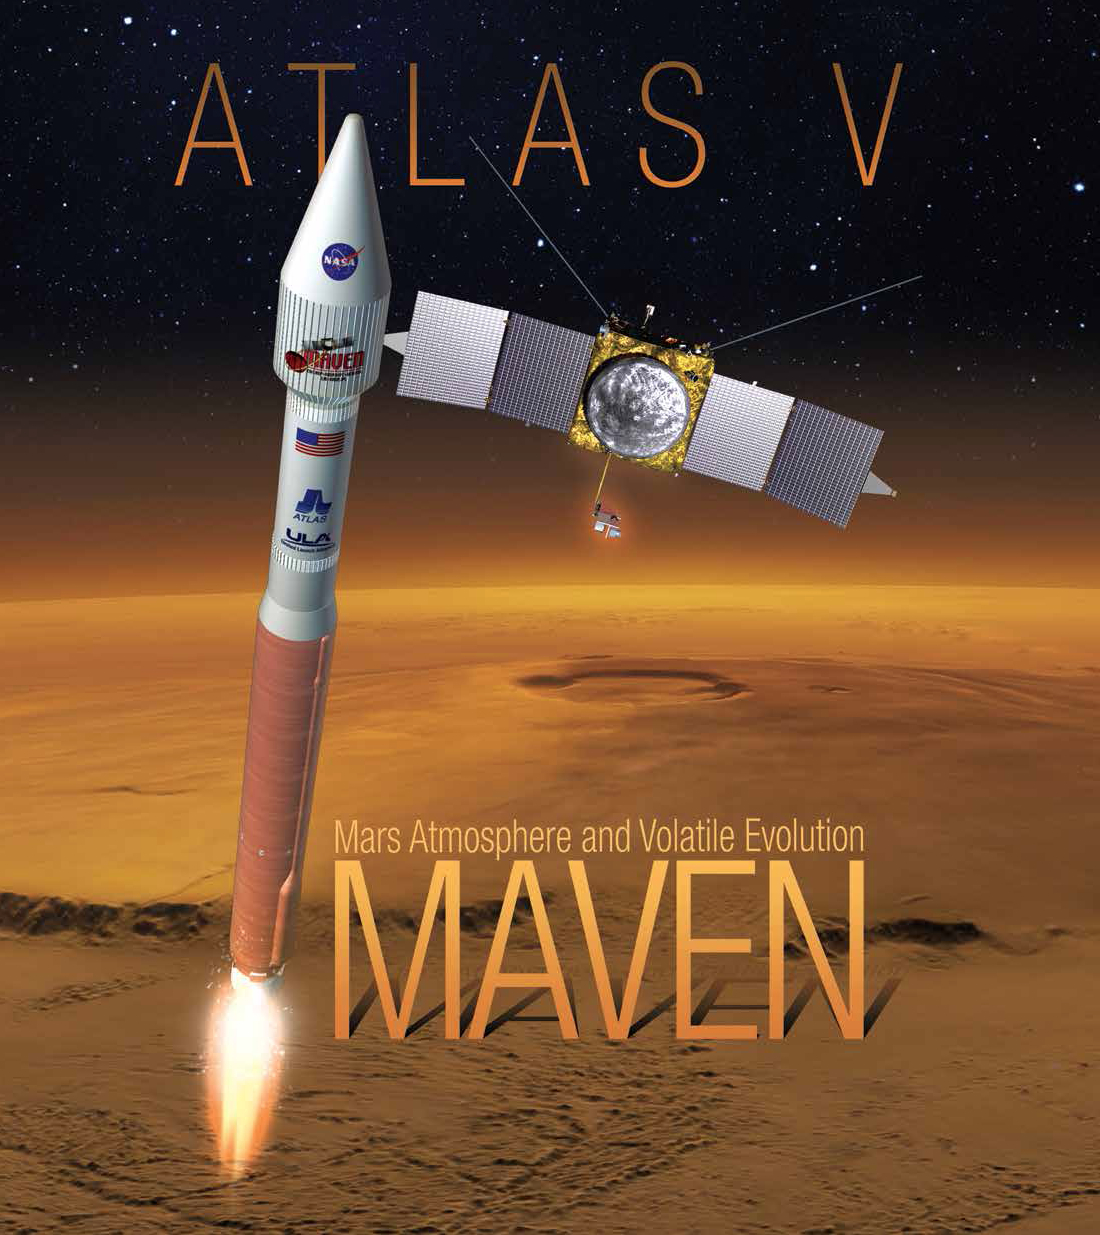 maven nasa - photo #16